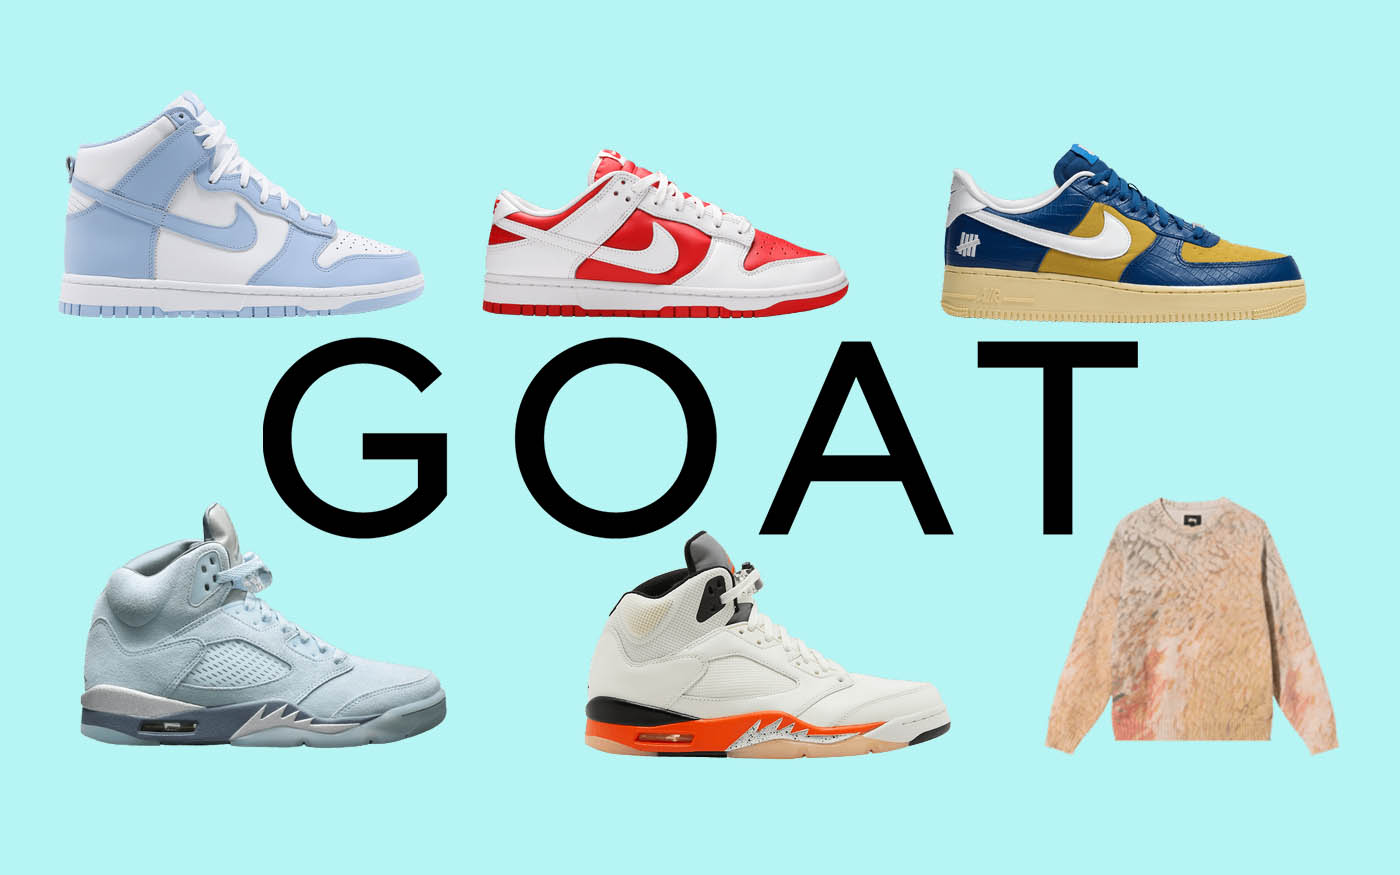 How Long Does Goat Take To Ship